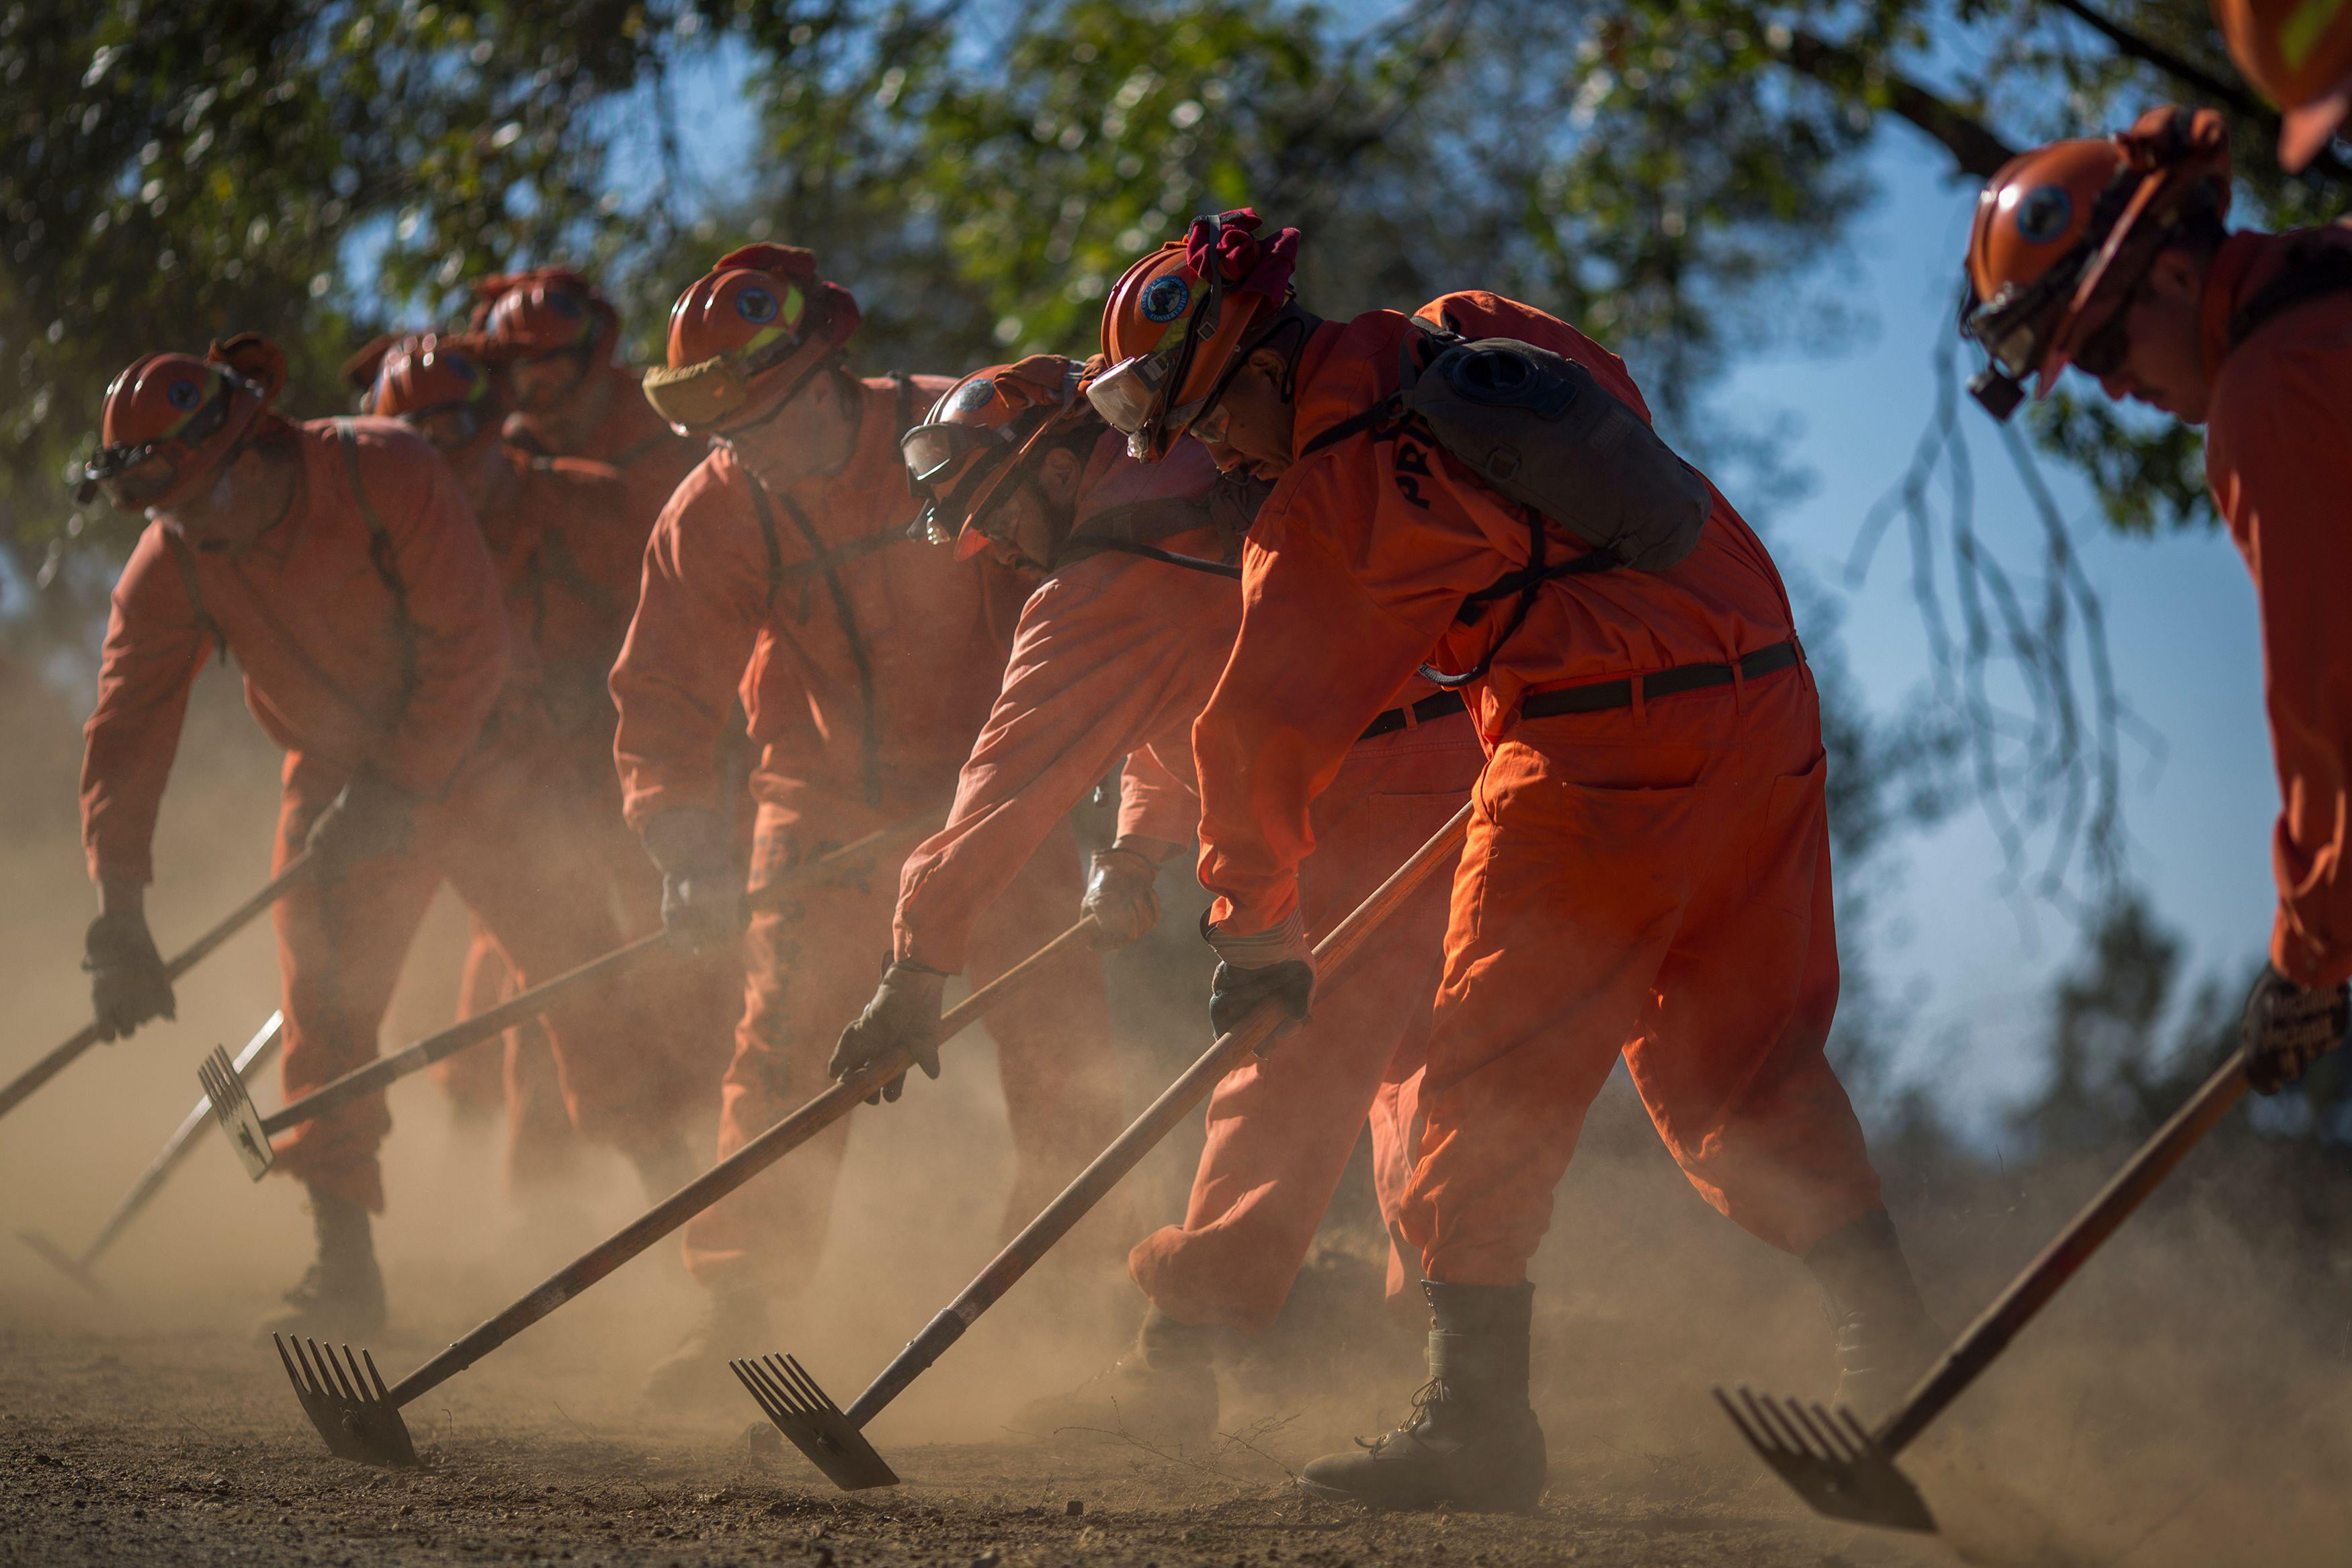 A line of inmate firefighters in jumpsuits strike the ground with hoes.